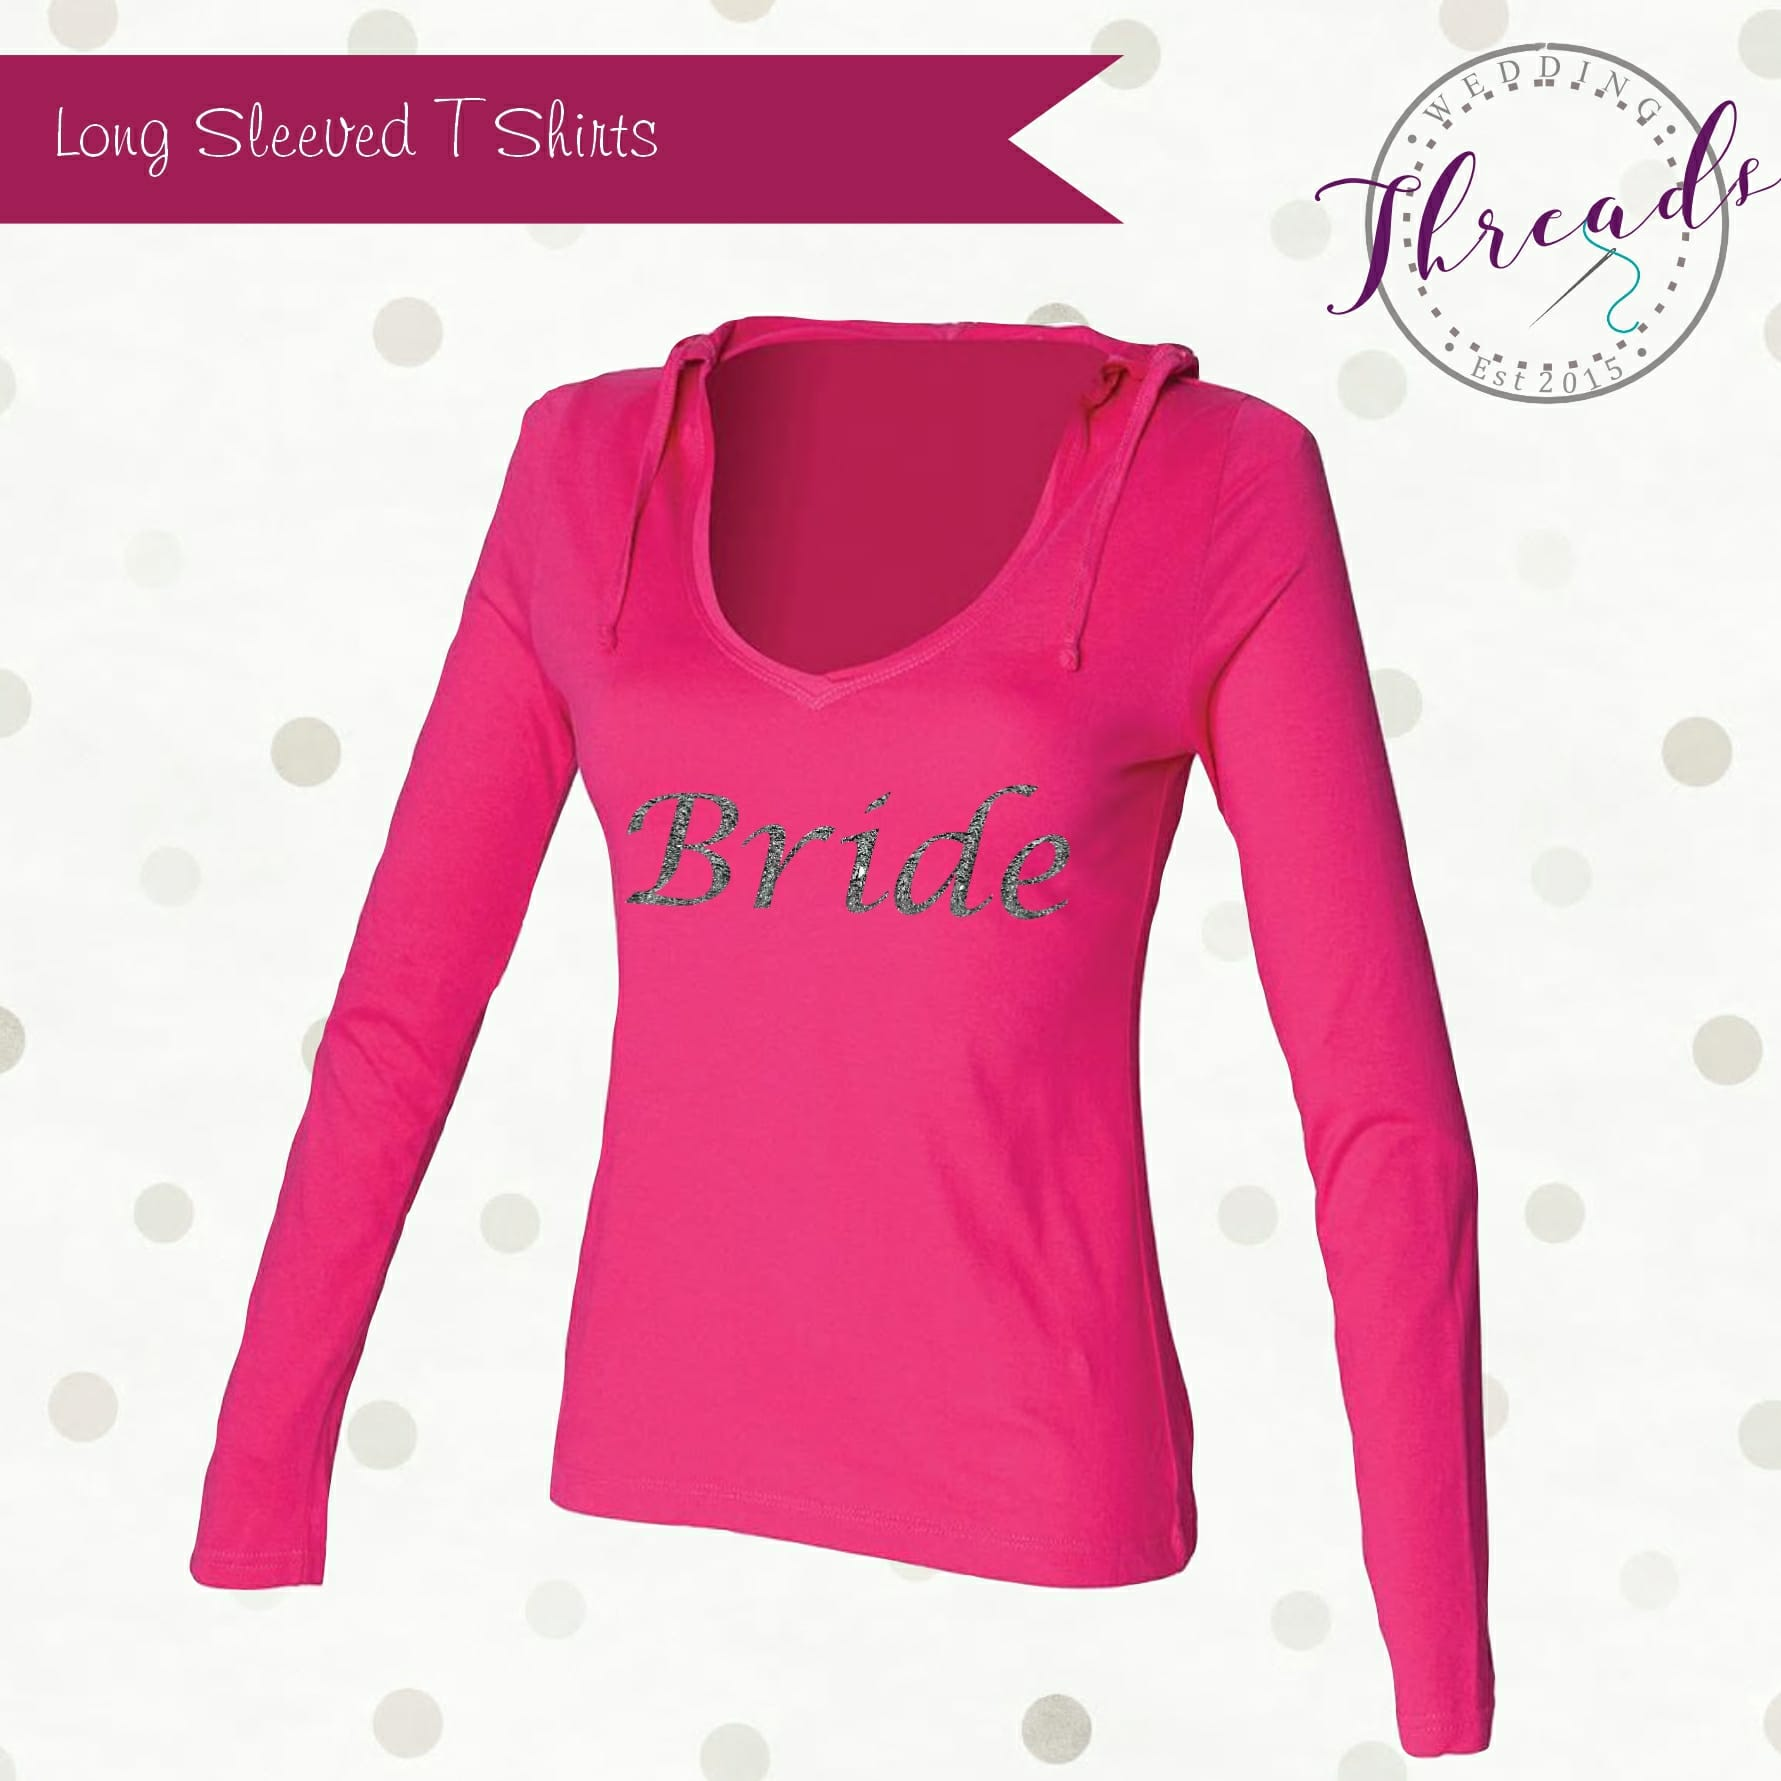 wedding long sleeved tshirt